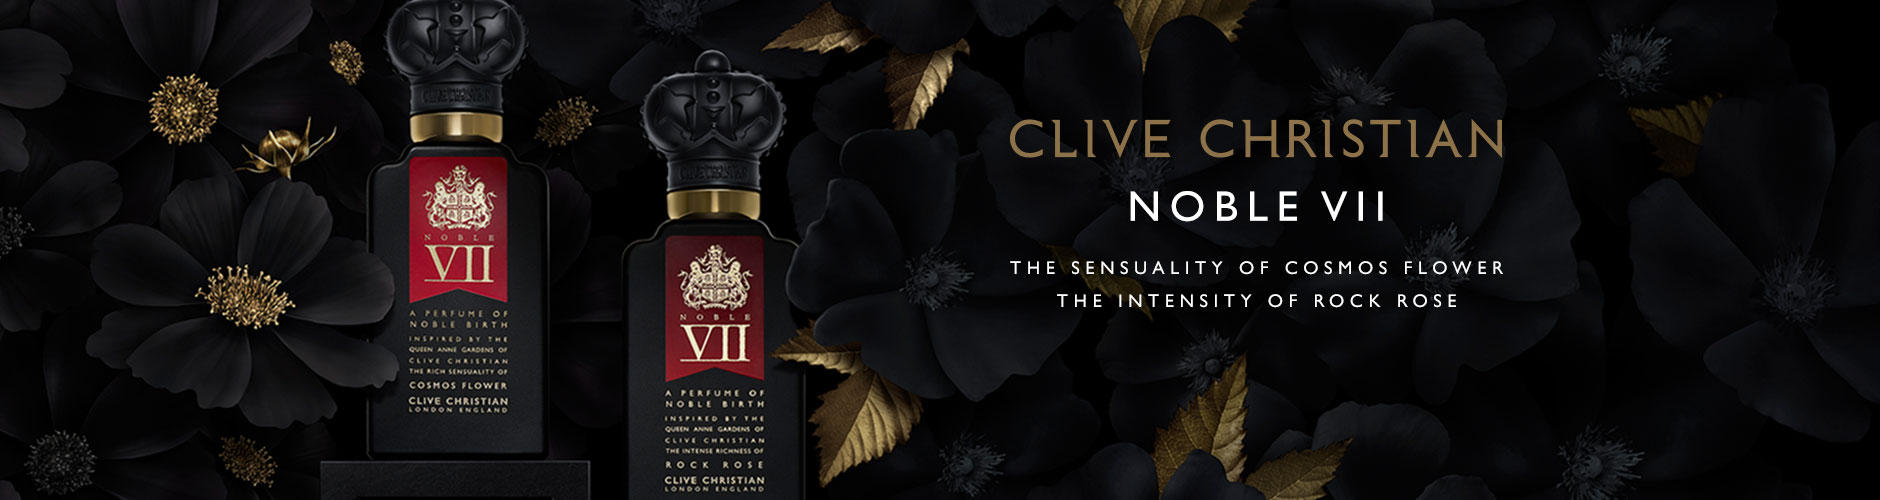 Clive Christian: Noble VII - The sensuality of cosmos flower, The intensity of rock rose